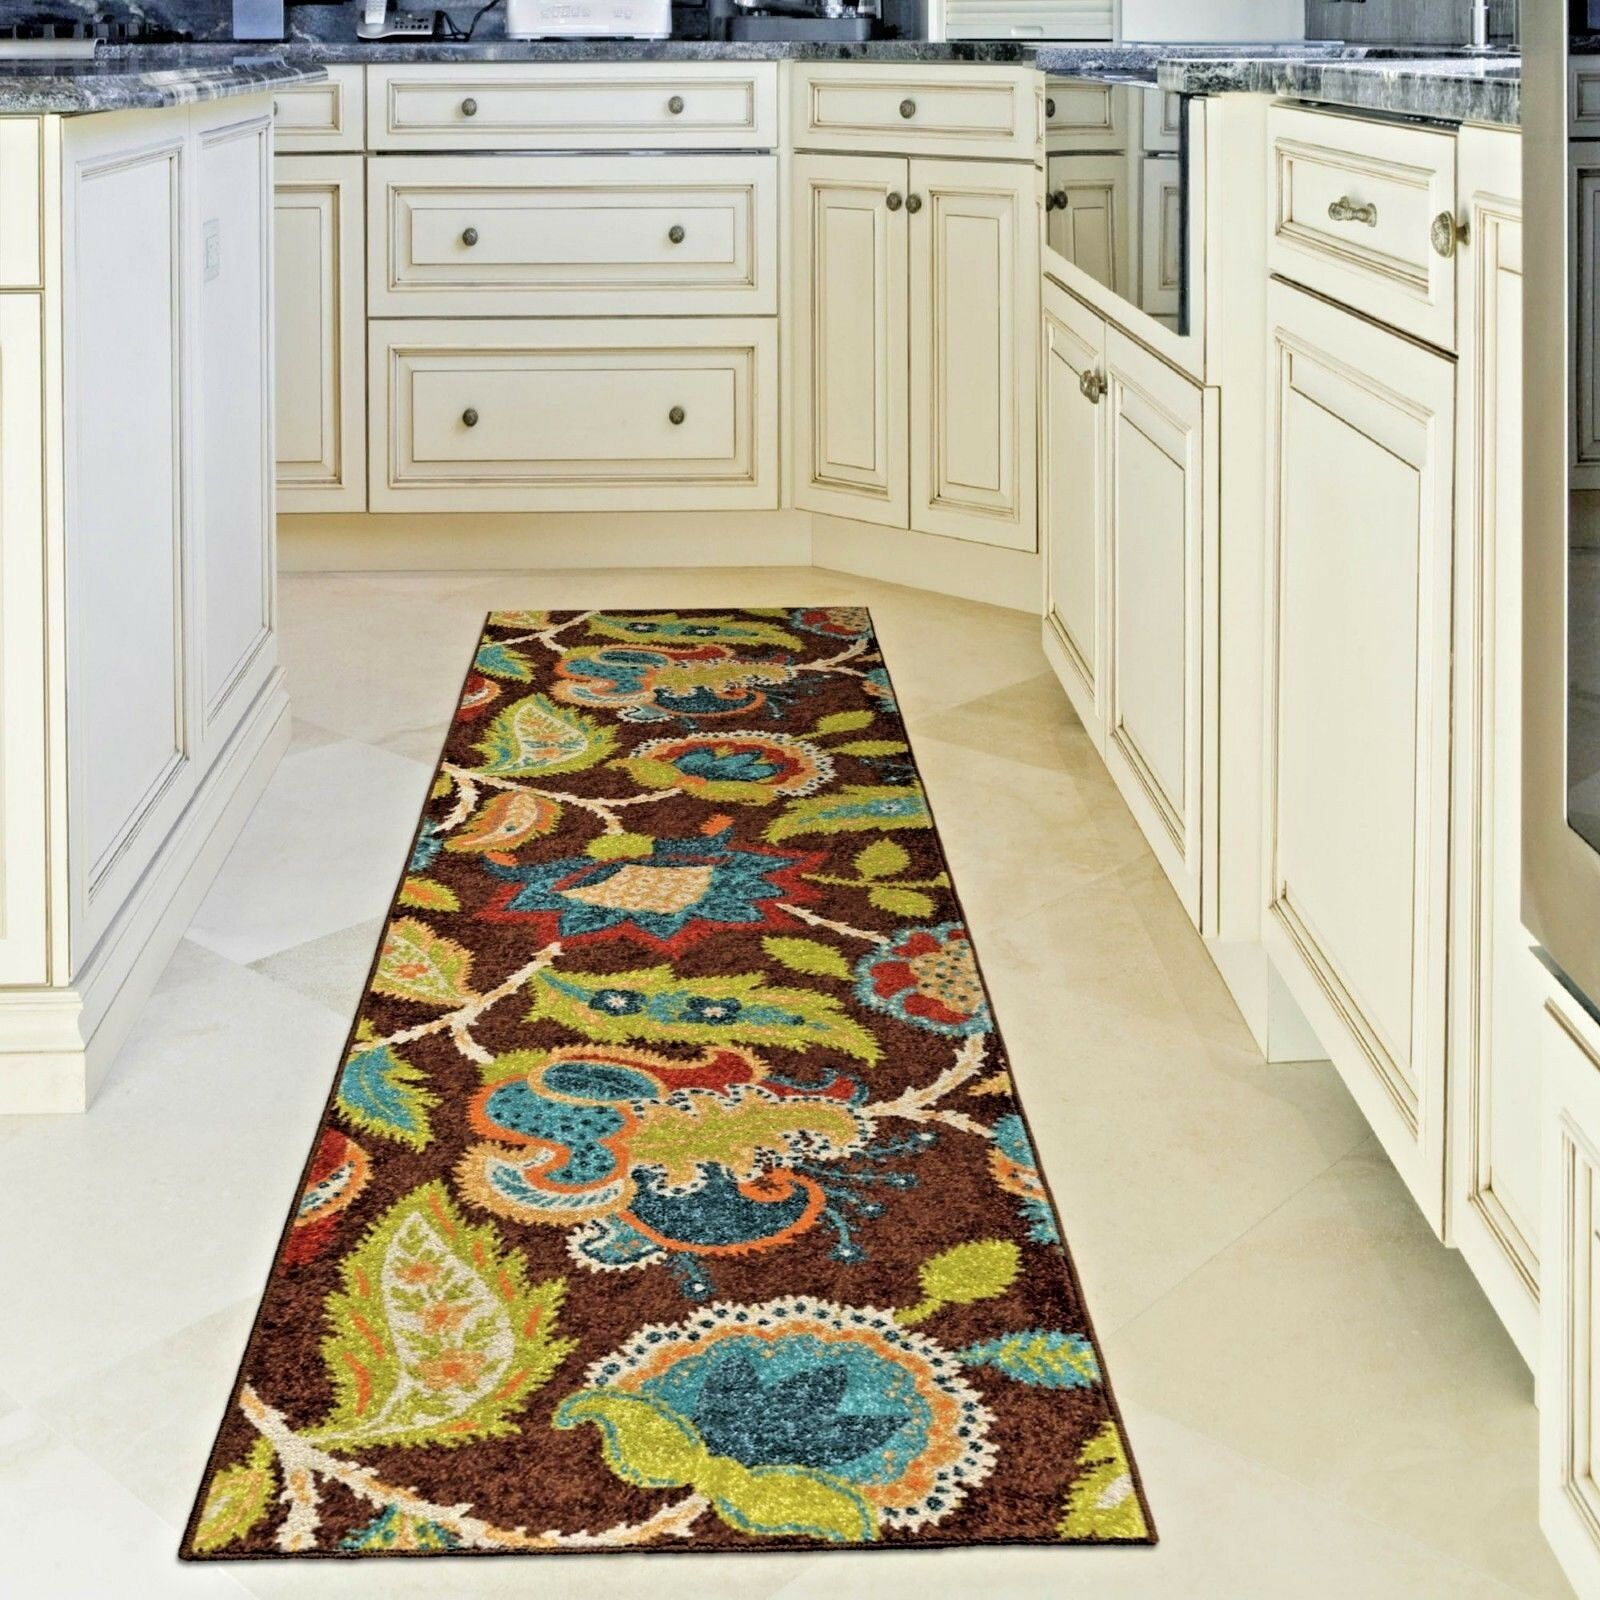 Runner Rugs Carpet Area Rug Runners Outdoor Carpet Floral